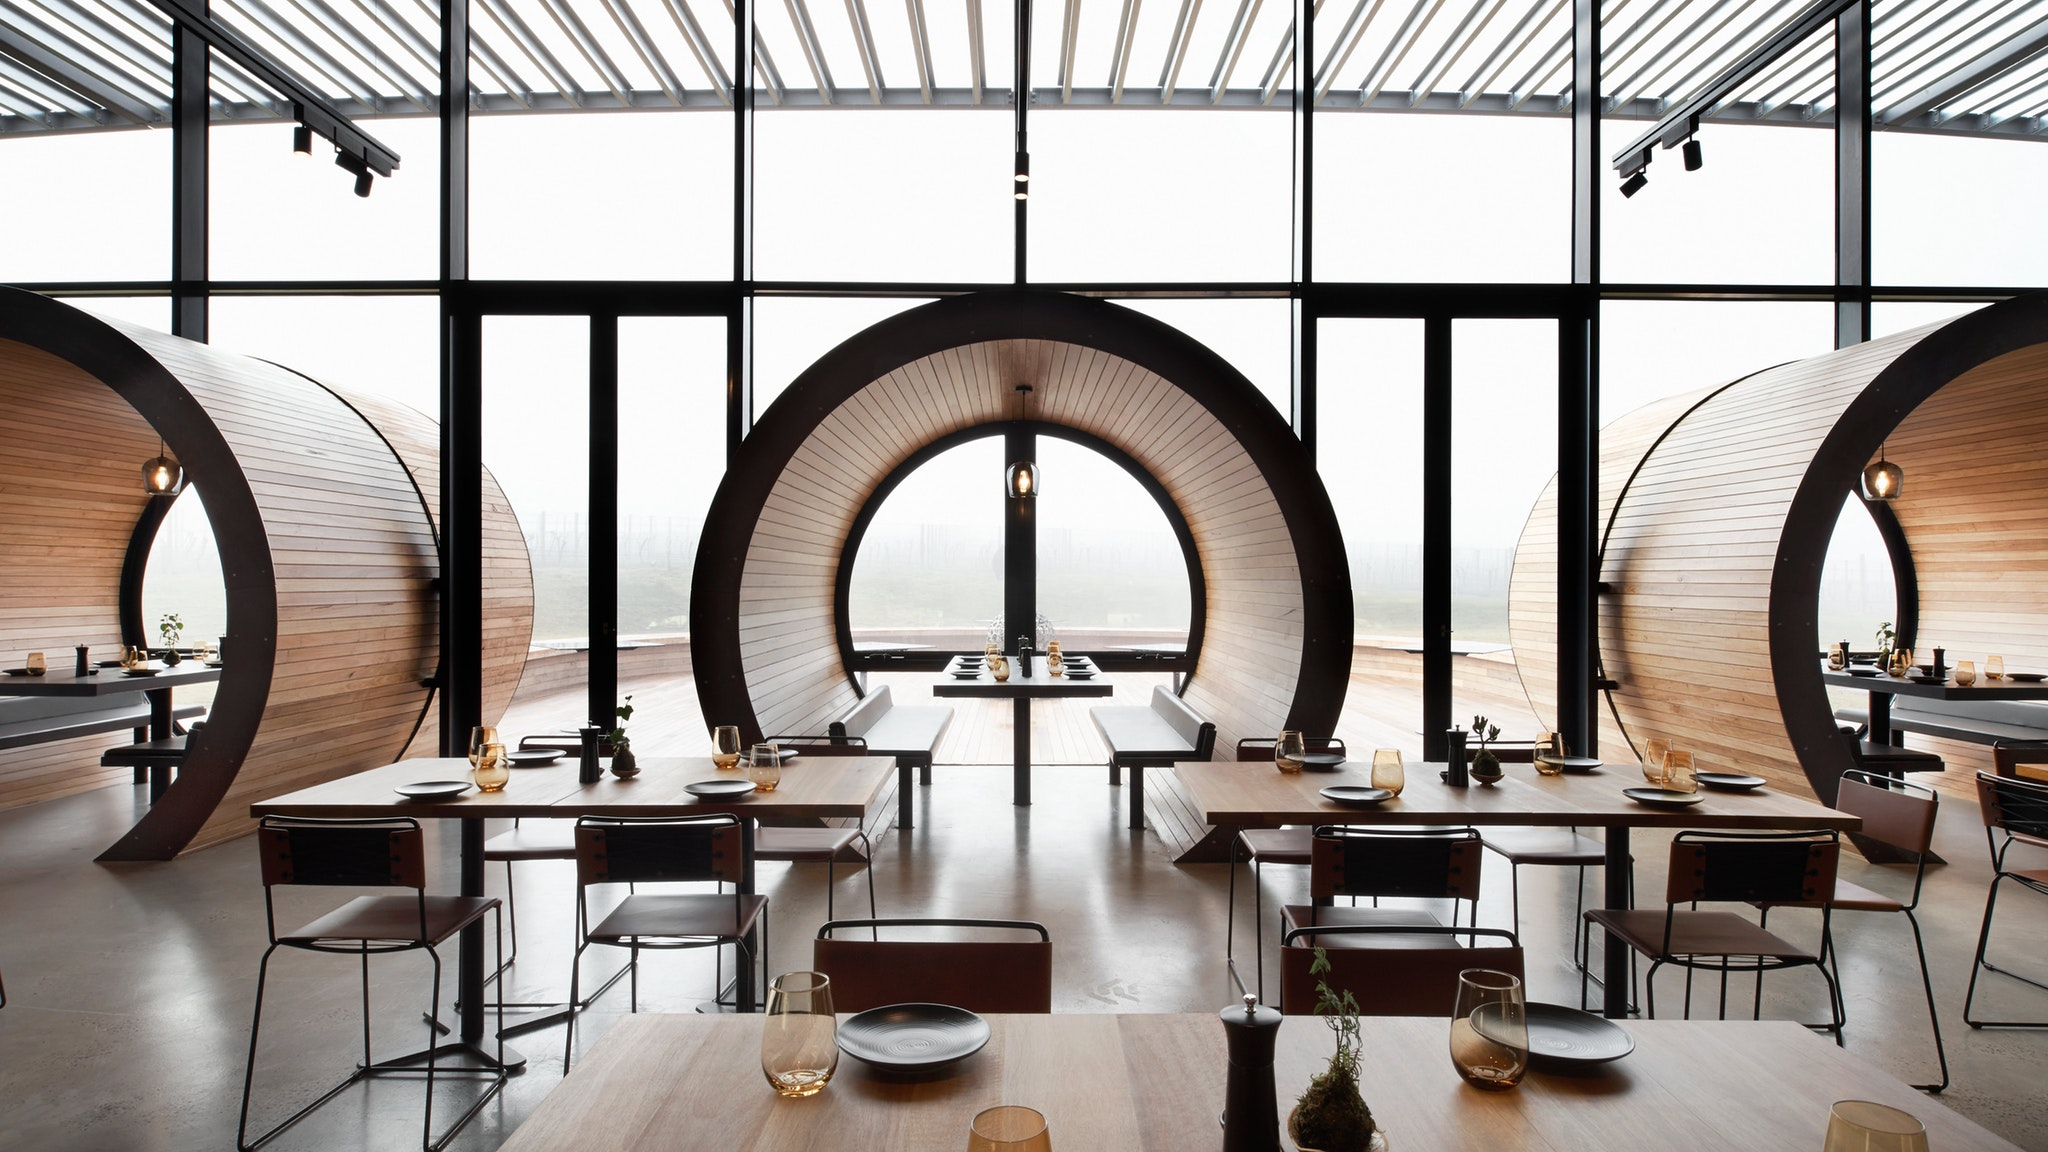 The barrel booths in the all day dining space